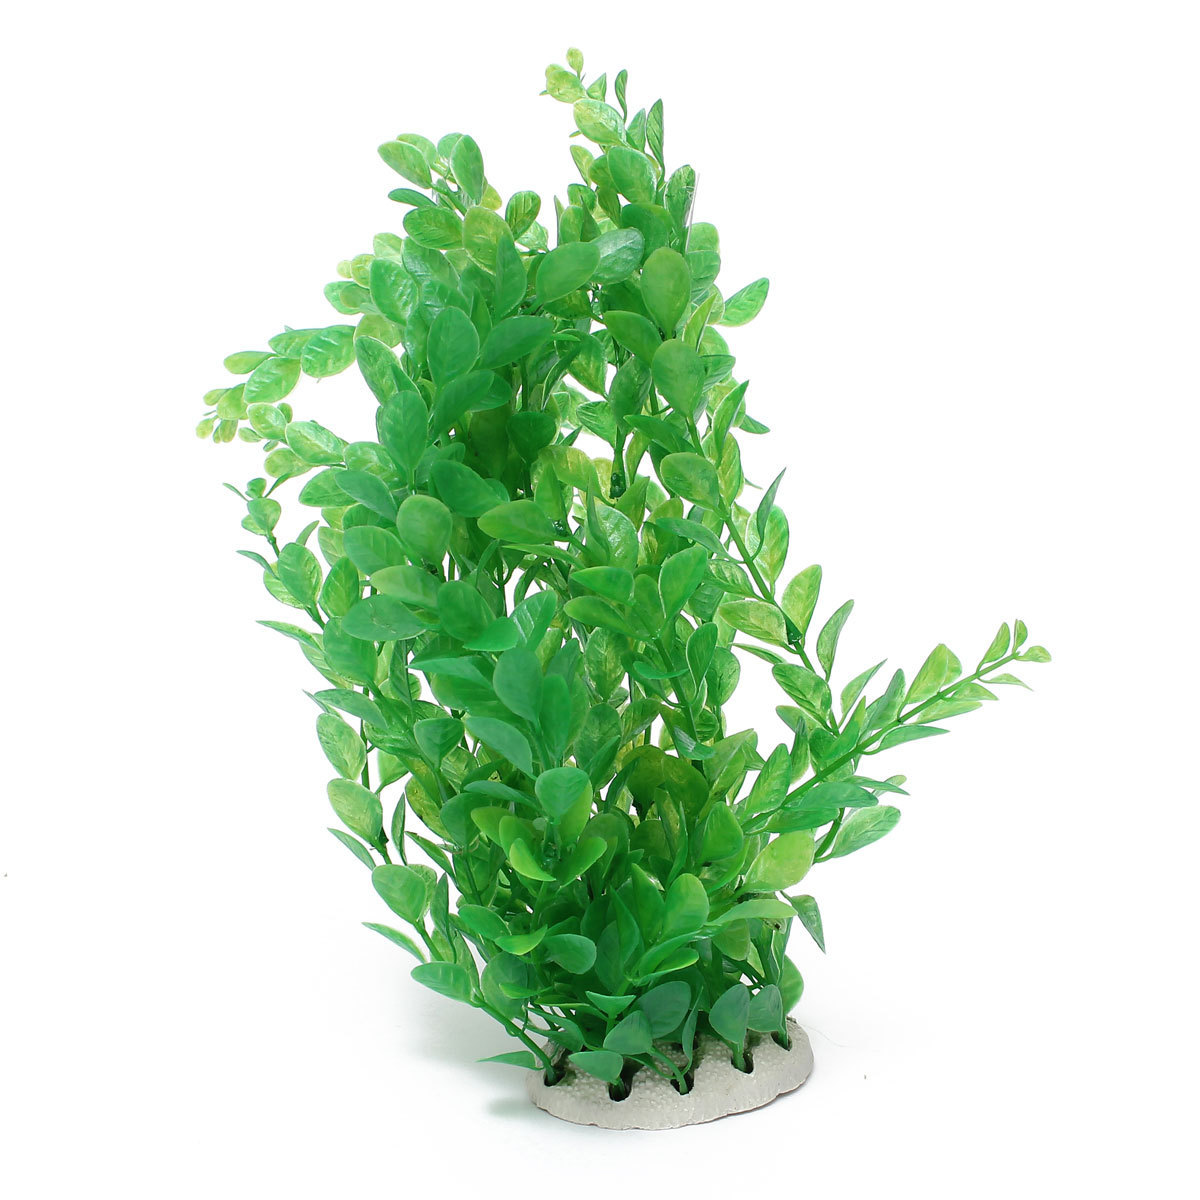 New aquarium artificial aquatic grass plants and 50 for Fake pond plants